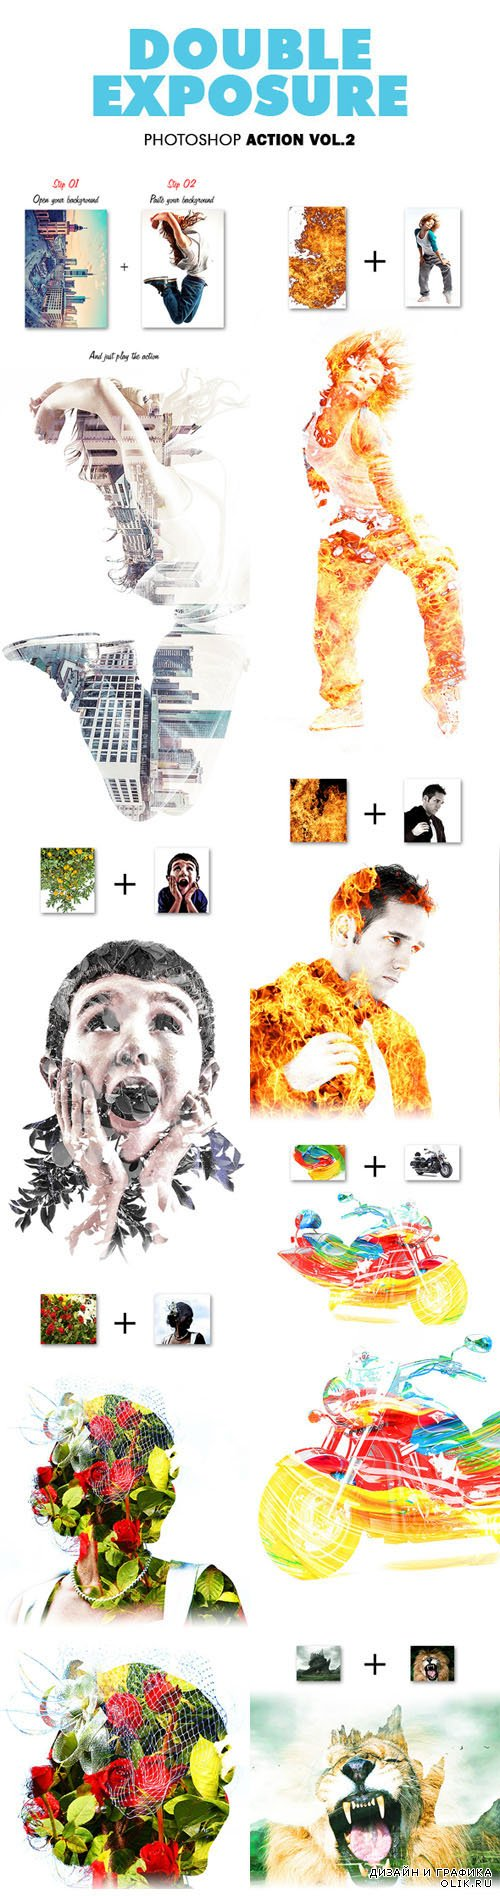 Double Exposure Vol.2 - Photoshop Action - Graphicriver 11735280